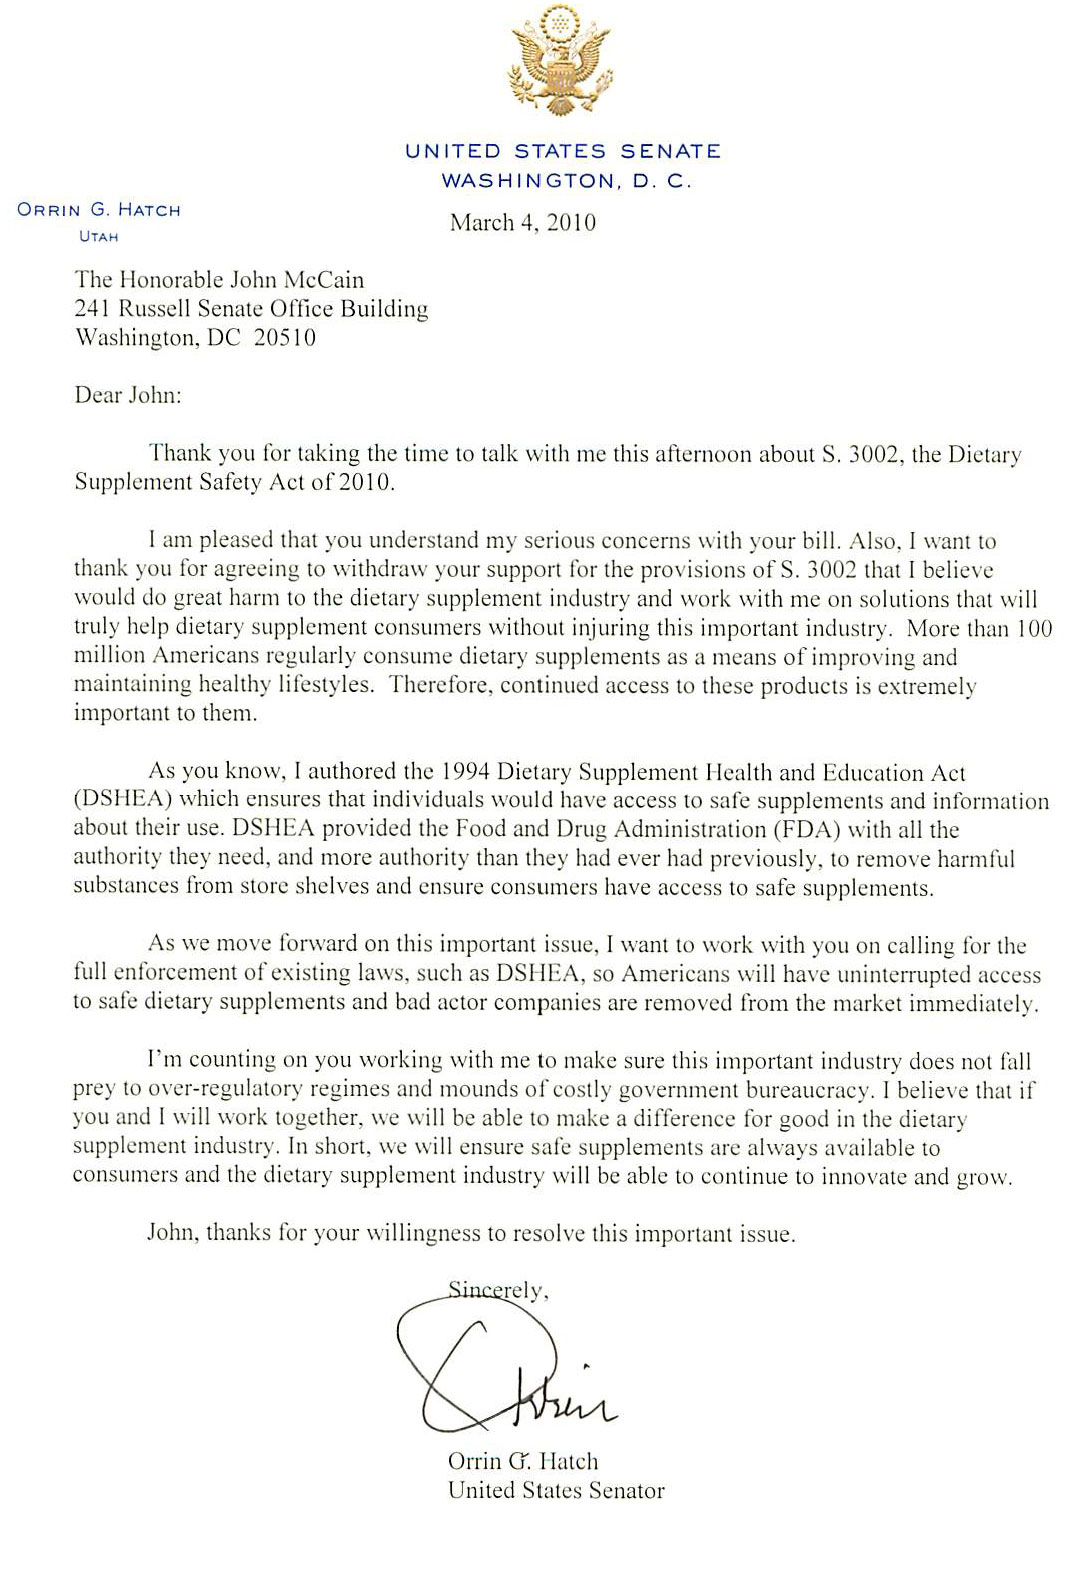 Orrin Hatch Letter To John McCain About S 3002 Citizens